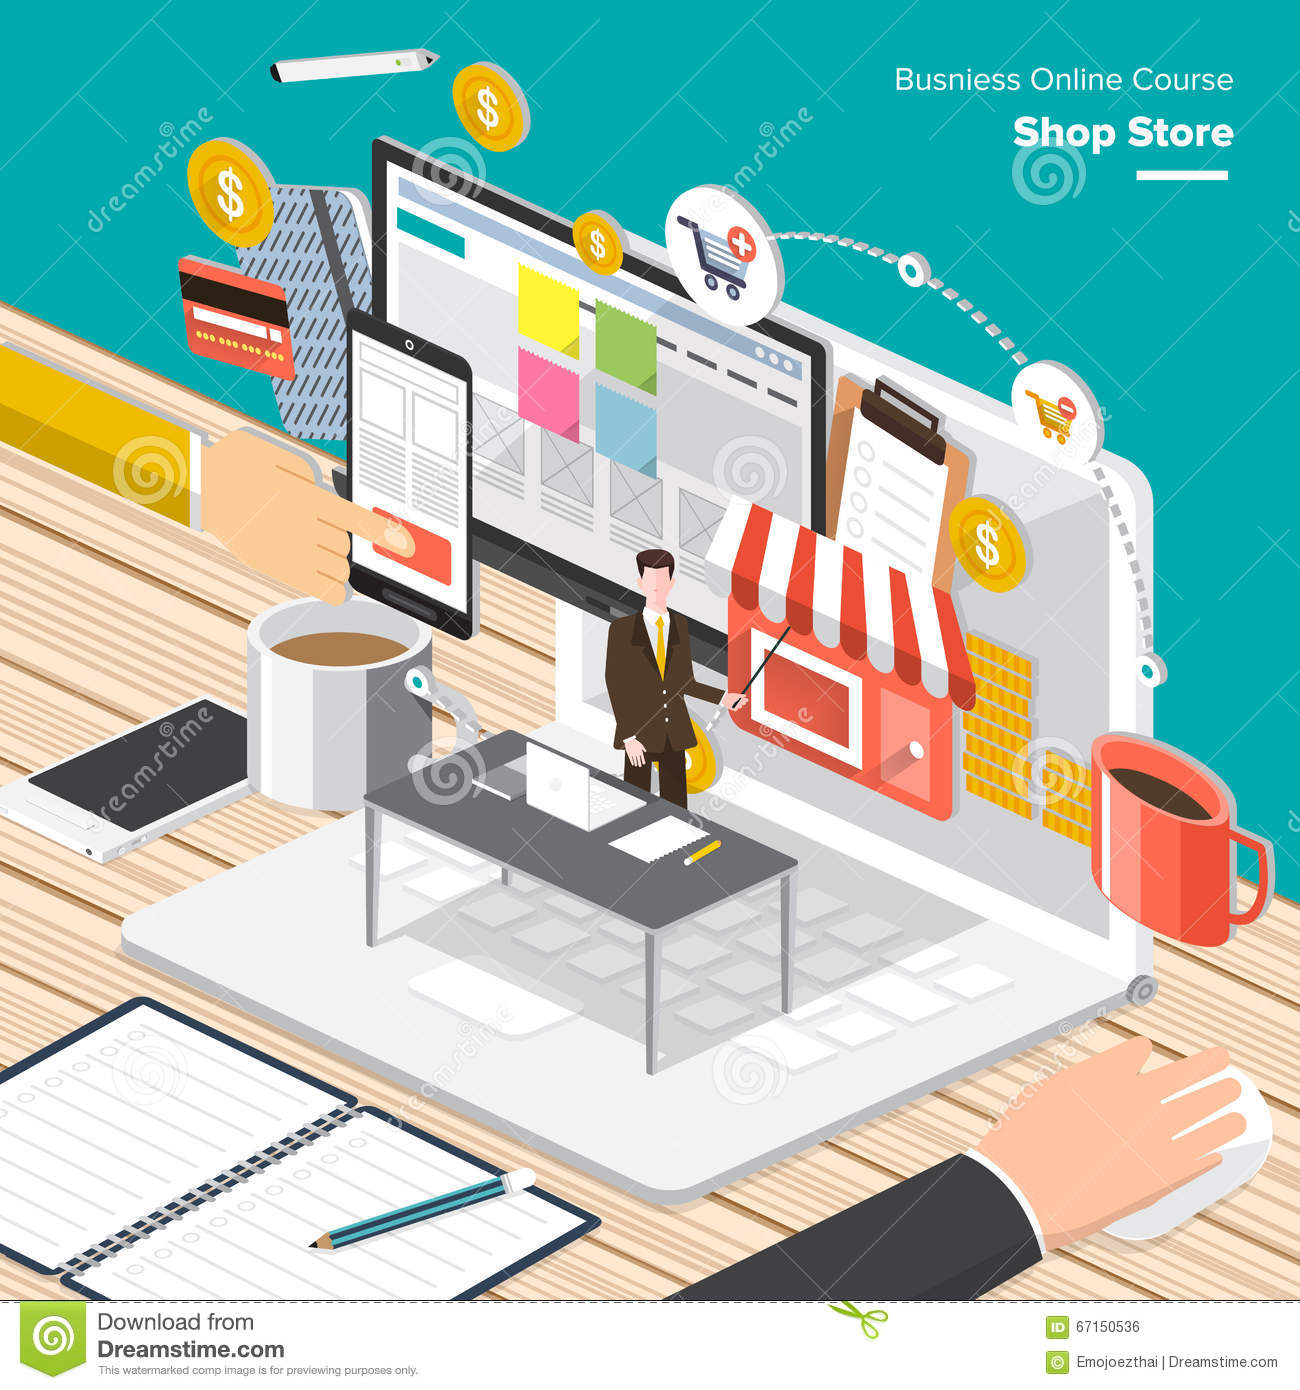 online business plan course